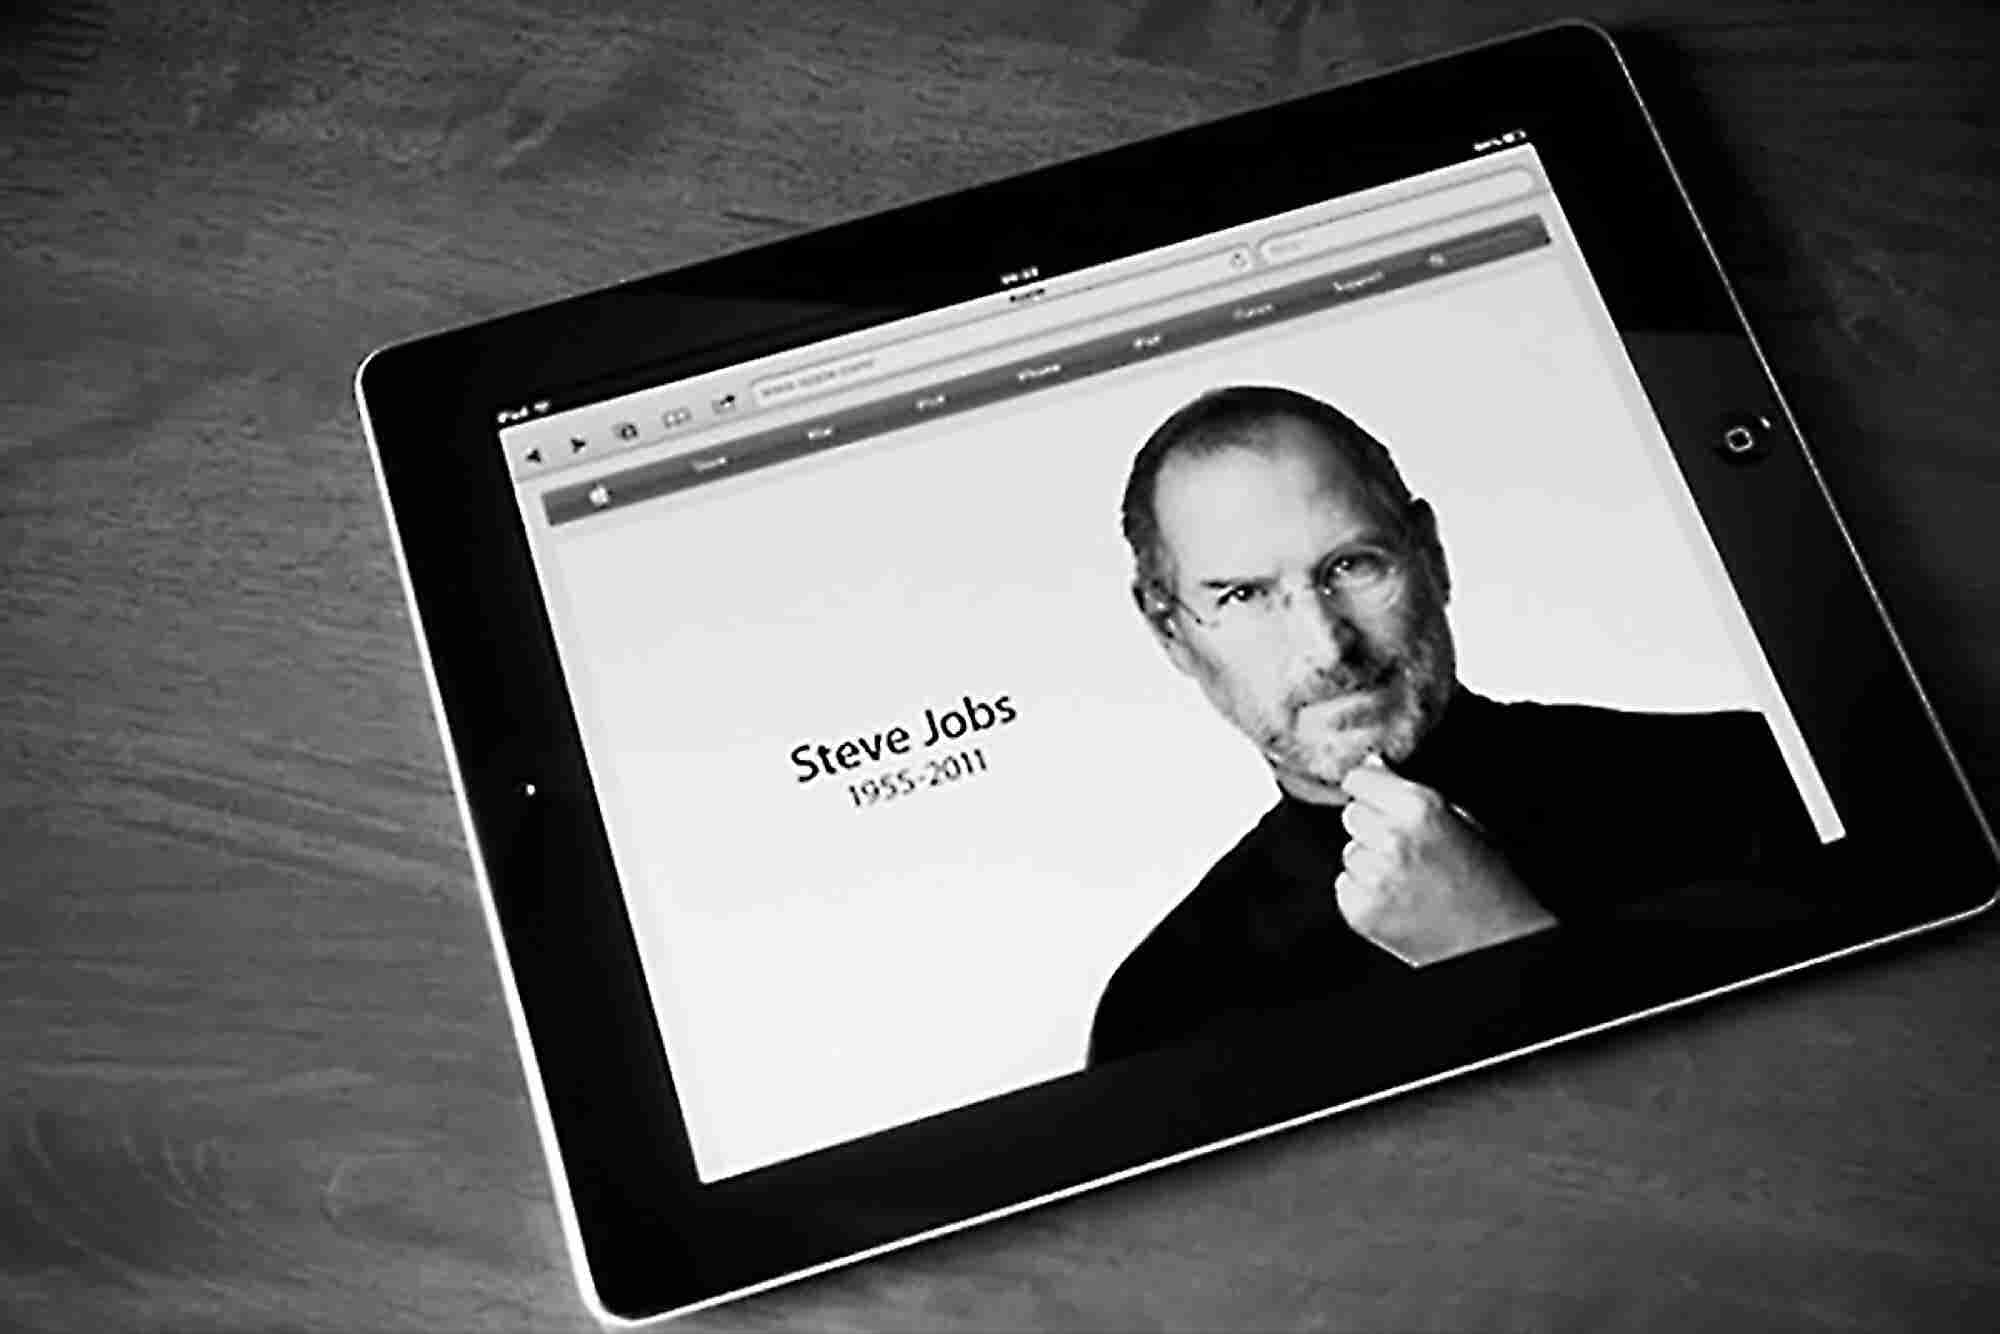 4 Things Steve Jobs Taught Me About Succeeding as an Entrepreneur